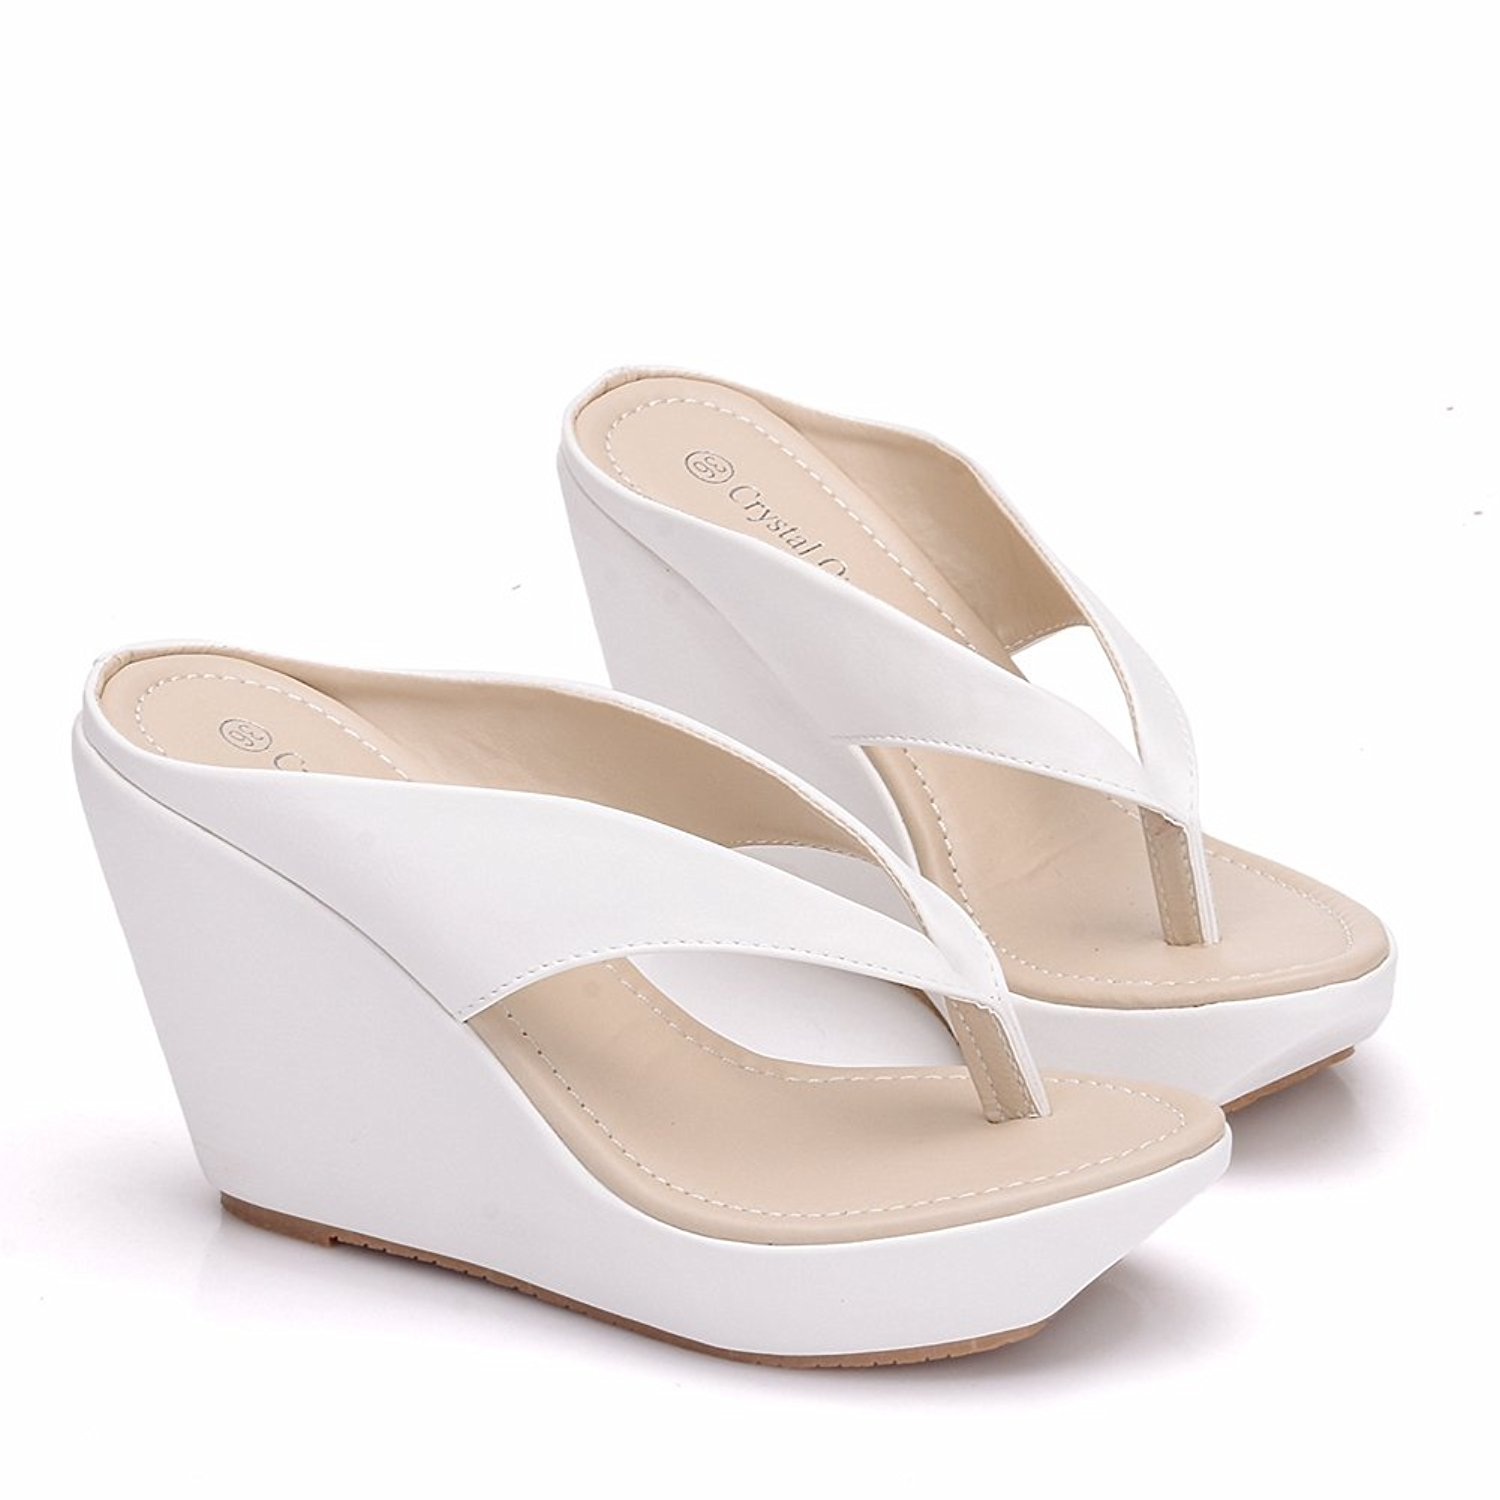 4fd69ab6b Get Quotations · Crystal Queen Women Beach Sandals Platform Wedges Sandals  High Heels Wedges Slippers Flip Flops White Flip